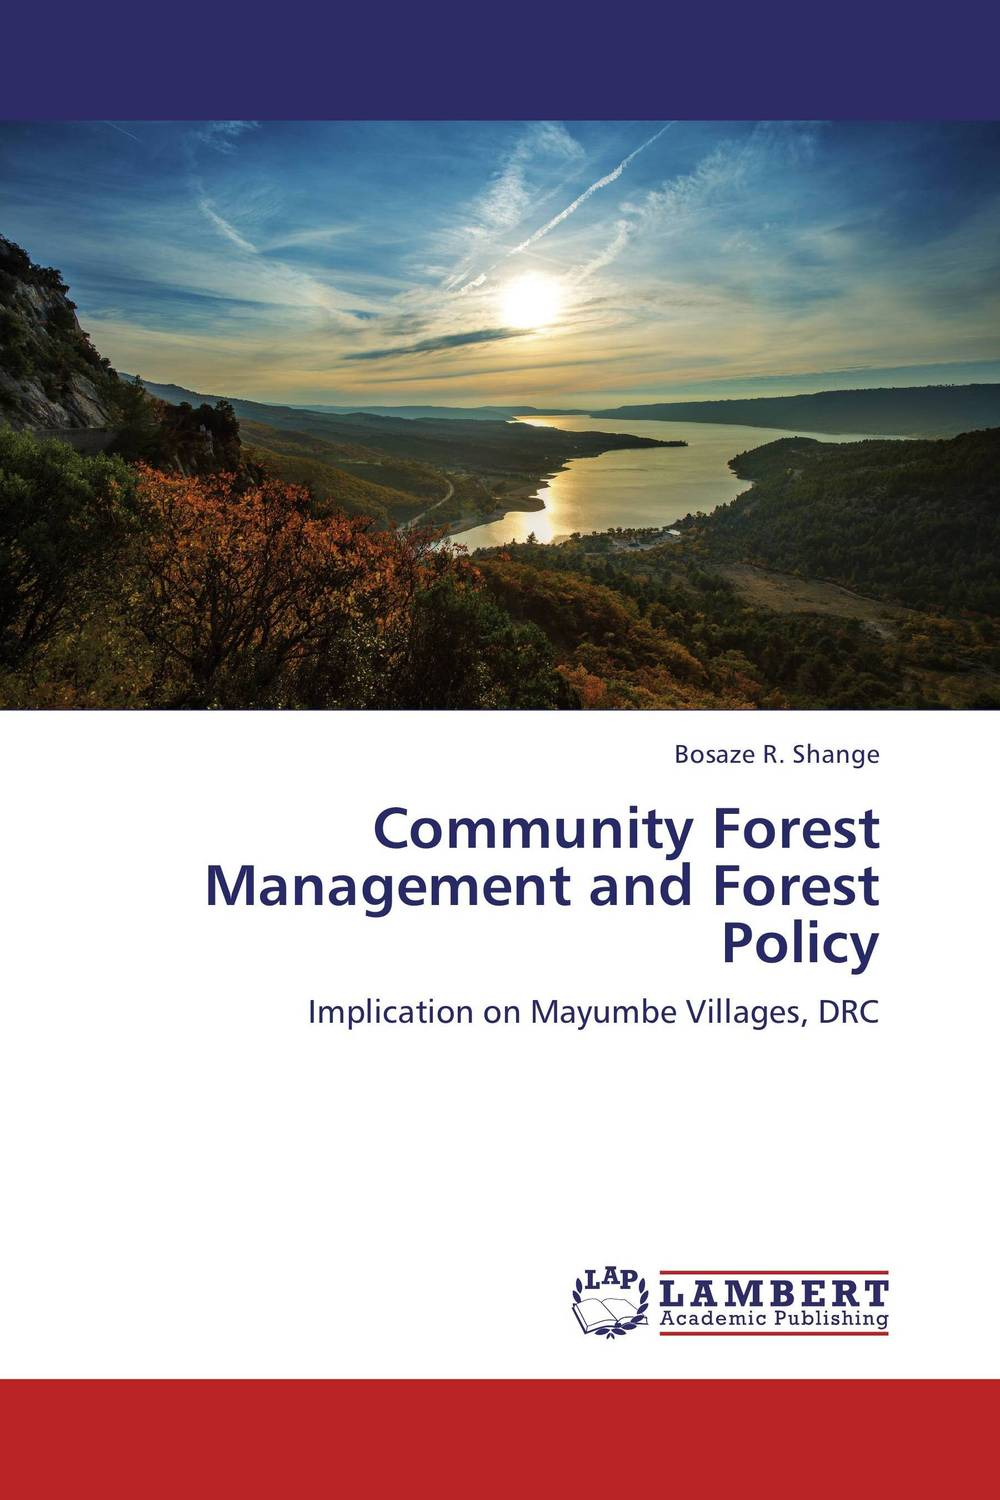 Community Forest Management and Forest Policy bhavana dixit rashmi agarwal and lalji singh floristic diversity of achanakmar amarkantak biosphere reserve